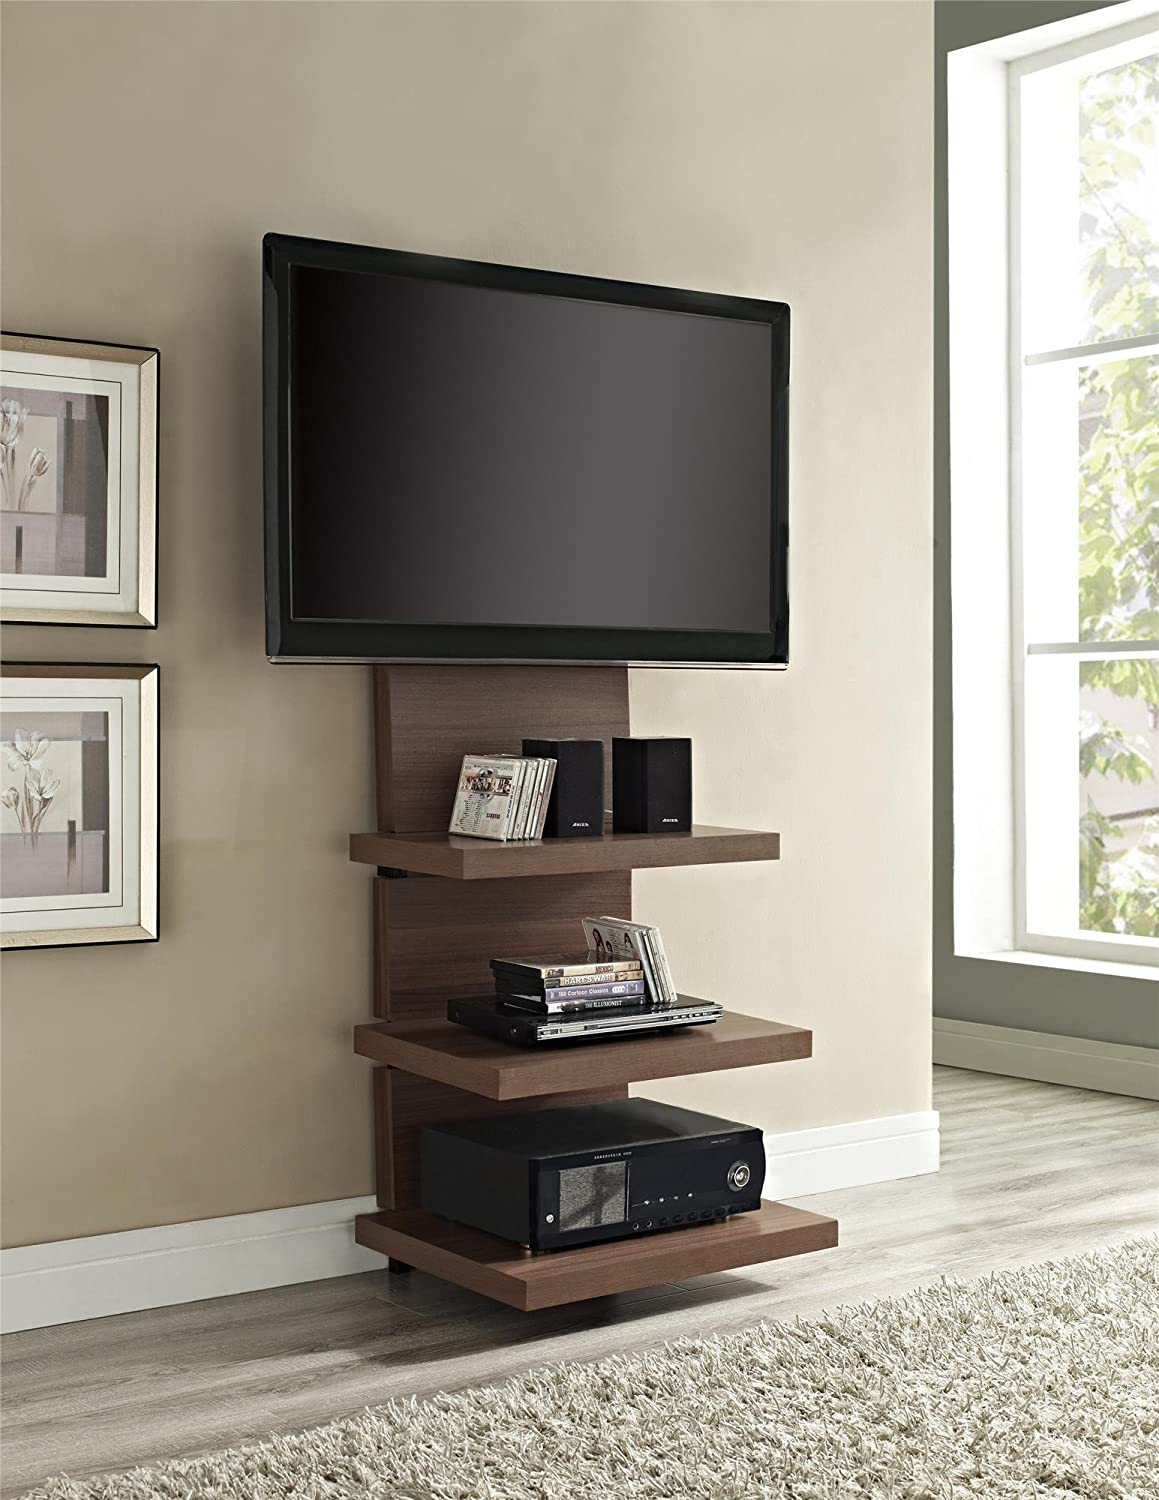 Amazon.com: Altra Furniture Hollow Core AltraMount TV Stand With Mount For  TVs Up To 60 Inch, Walnut Finish: Kitchen U0026 Dining